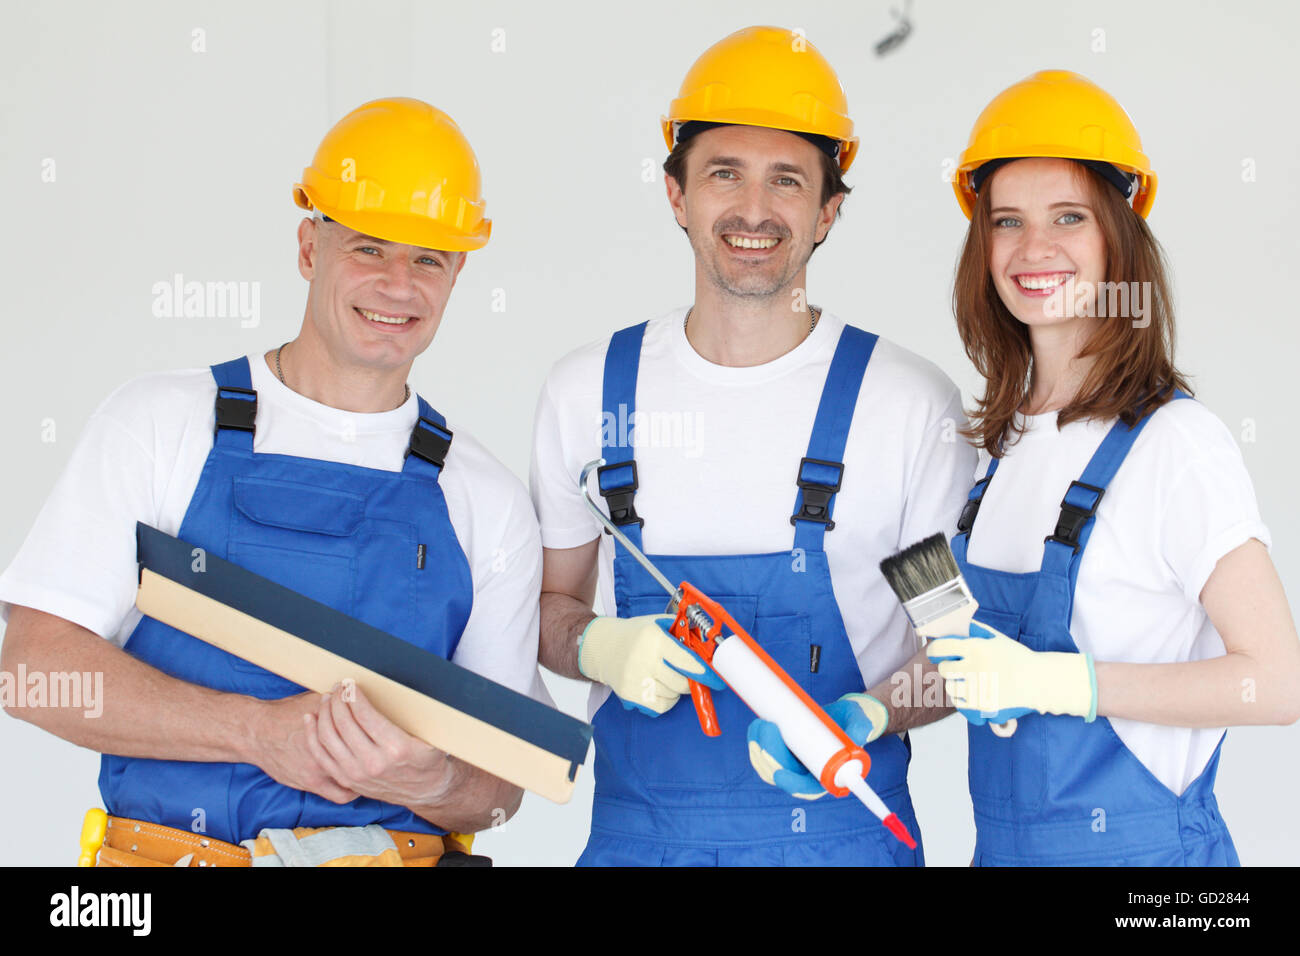 Three smiling workers wearing hardhats with different tools - Stock Image